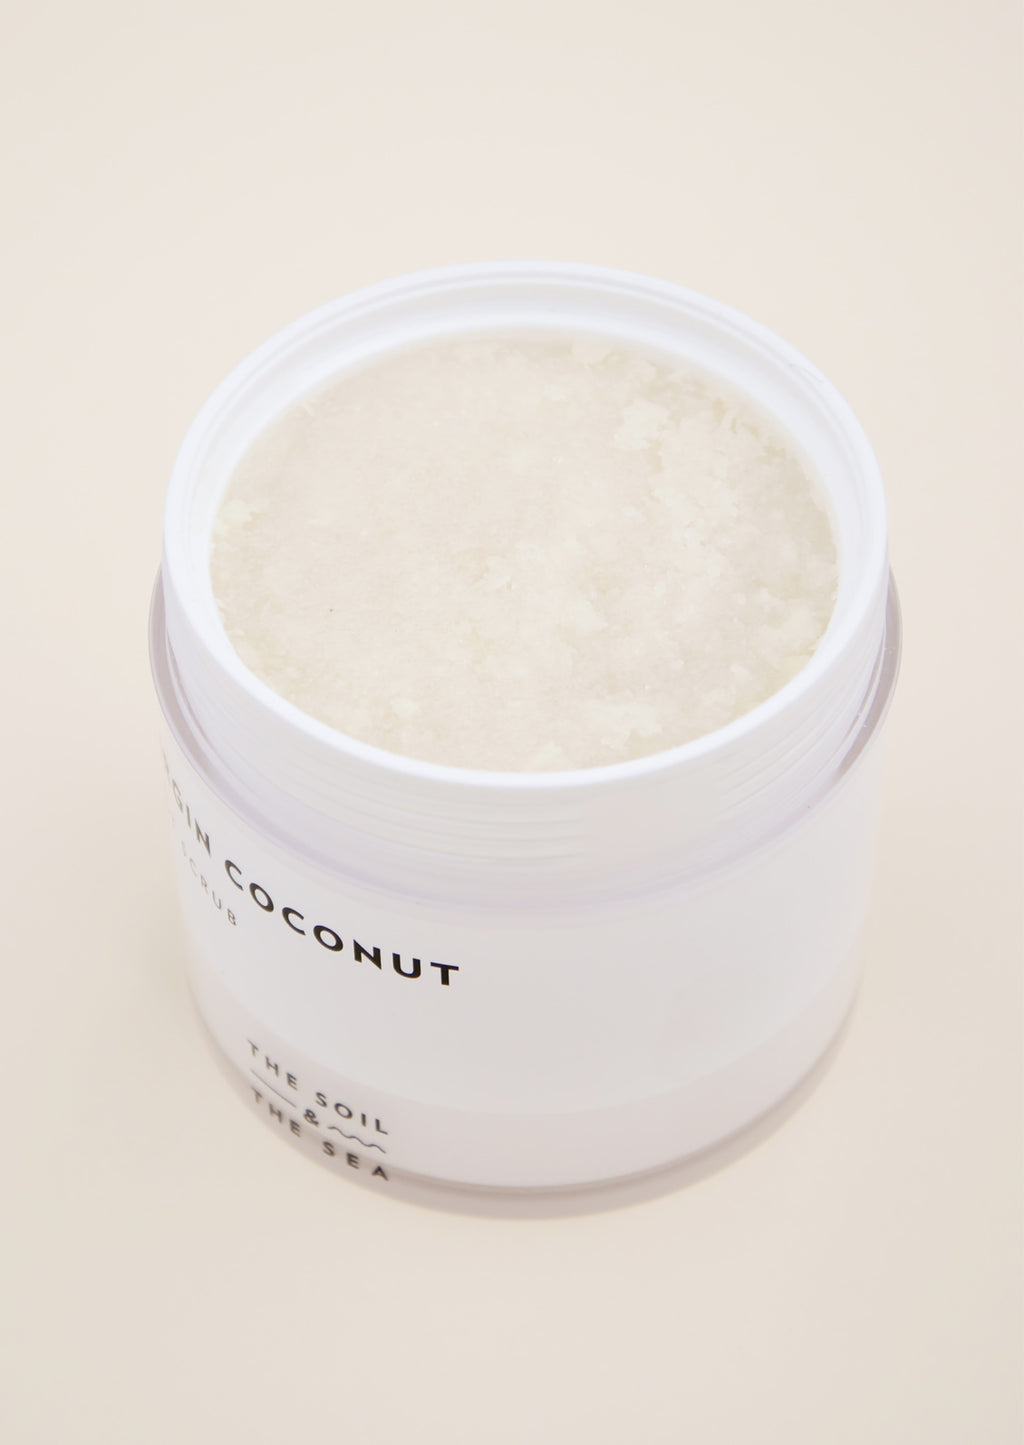 Virgin Coconut Salt Scrub